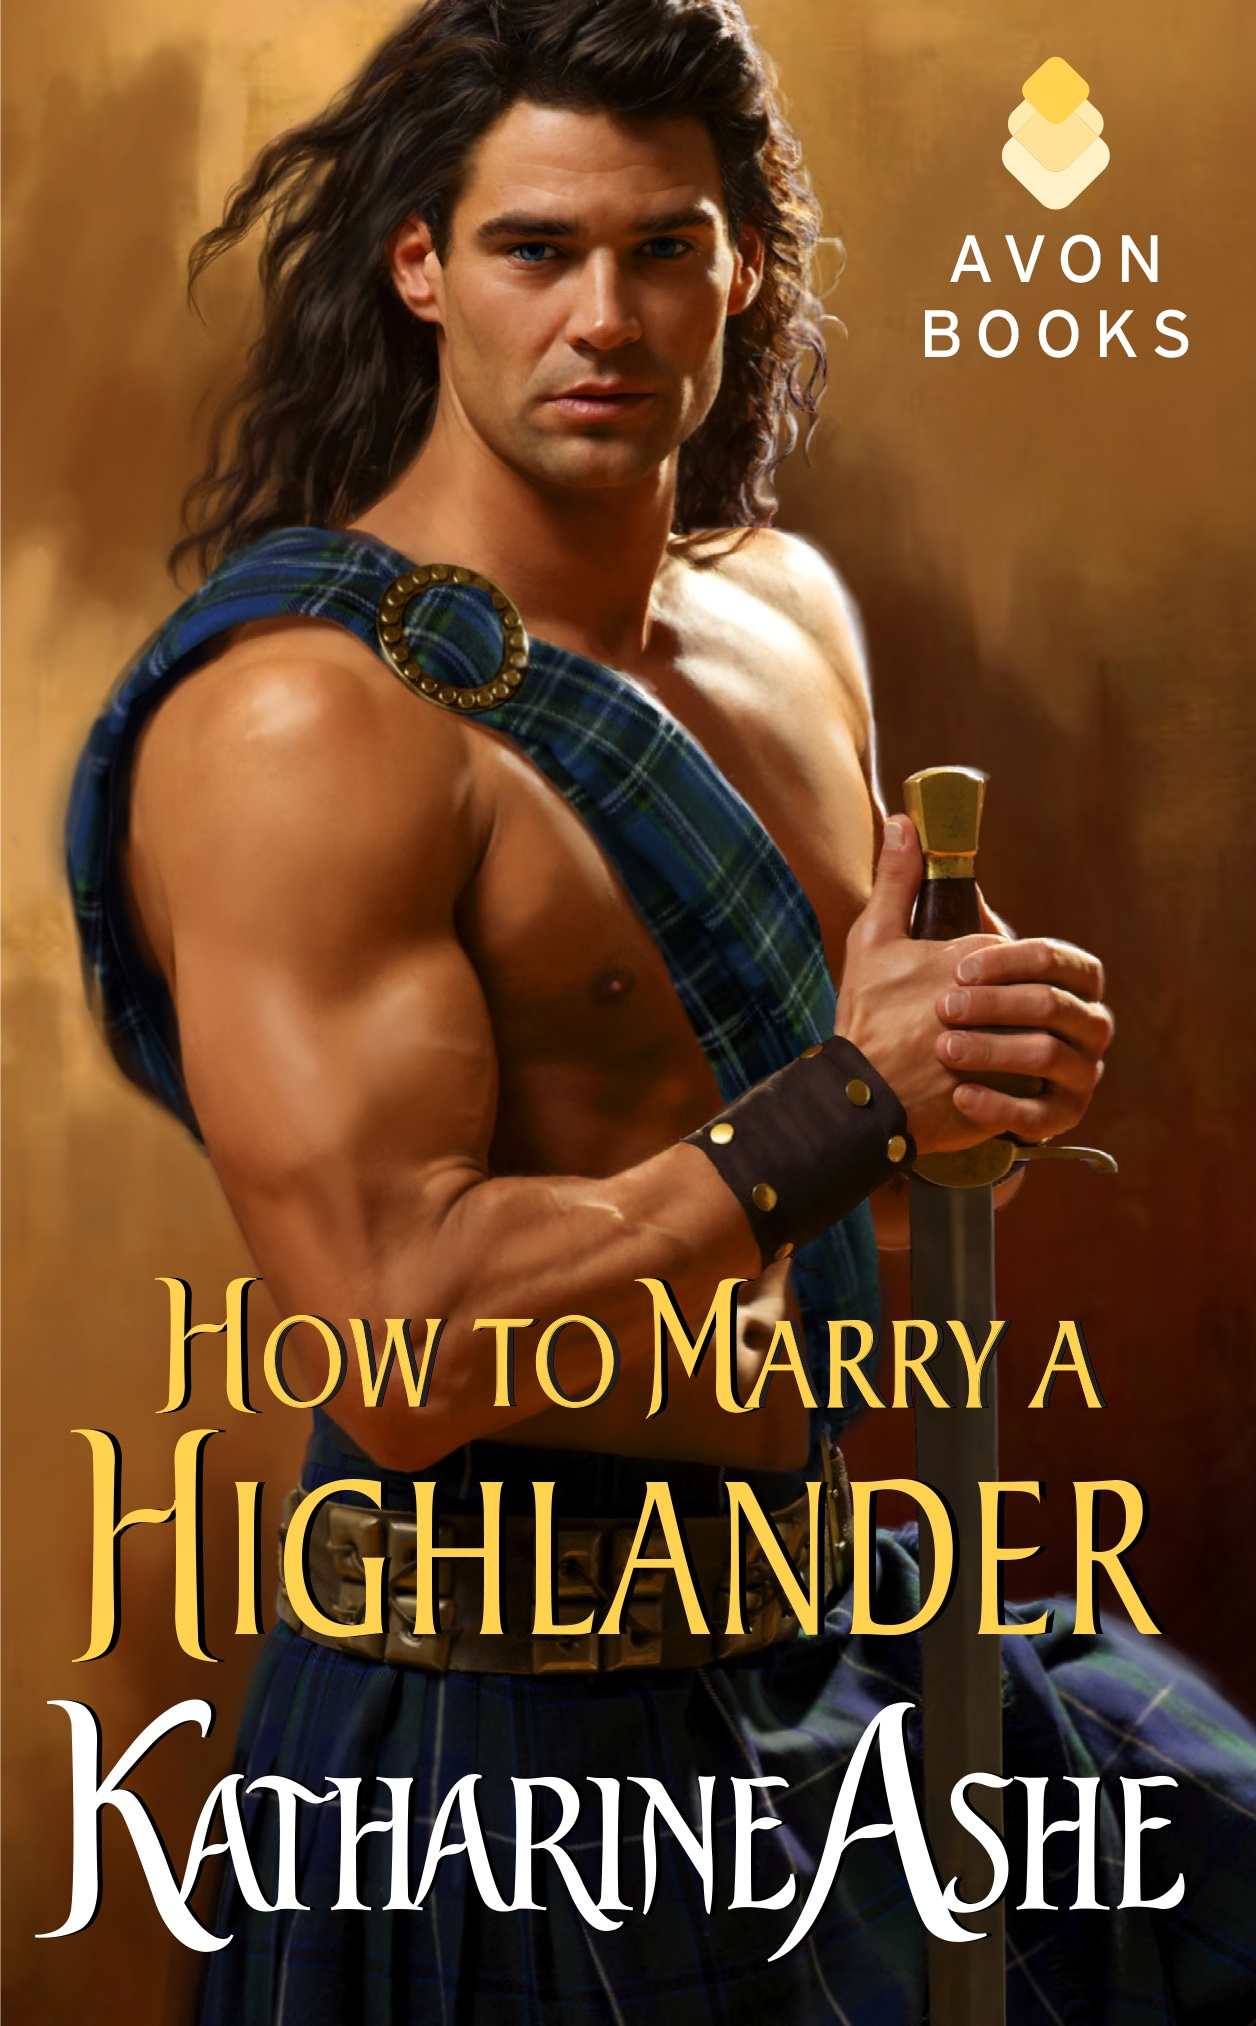 cover-Ashe-HOW-A-MARRY-A-HIGHLANDER.jpg